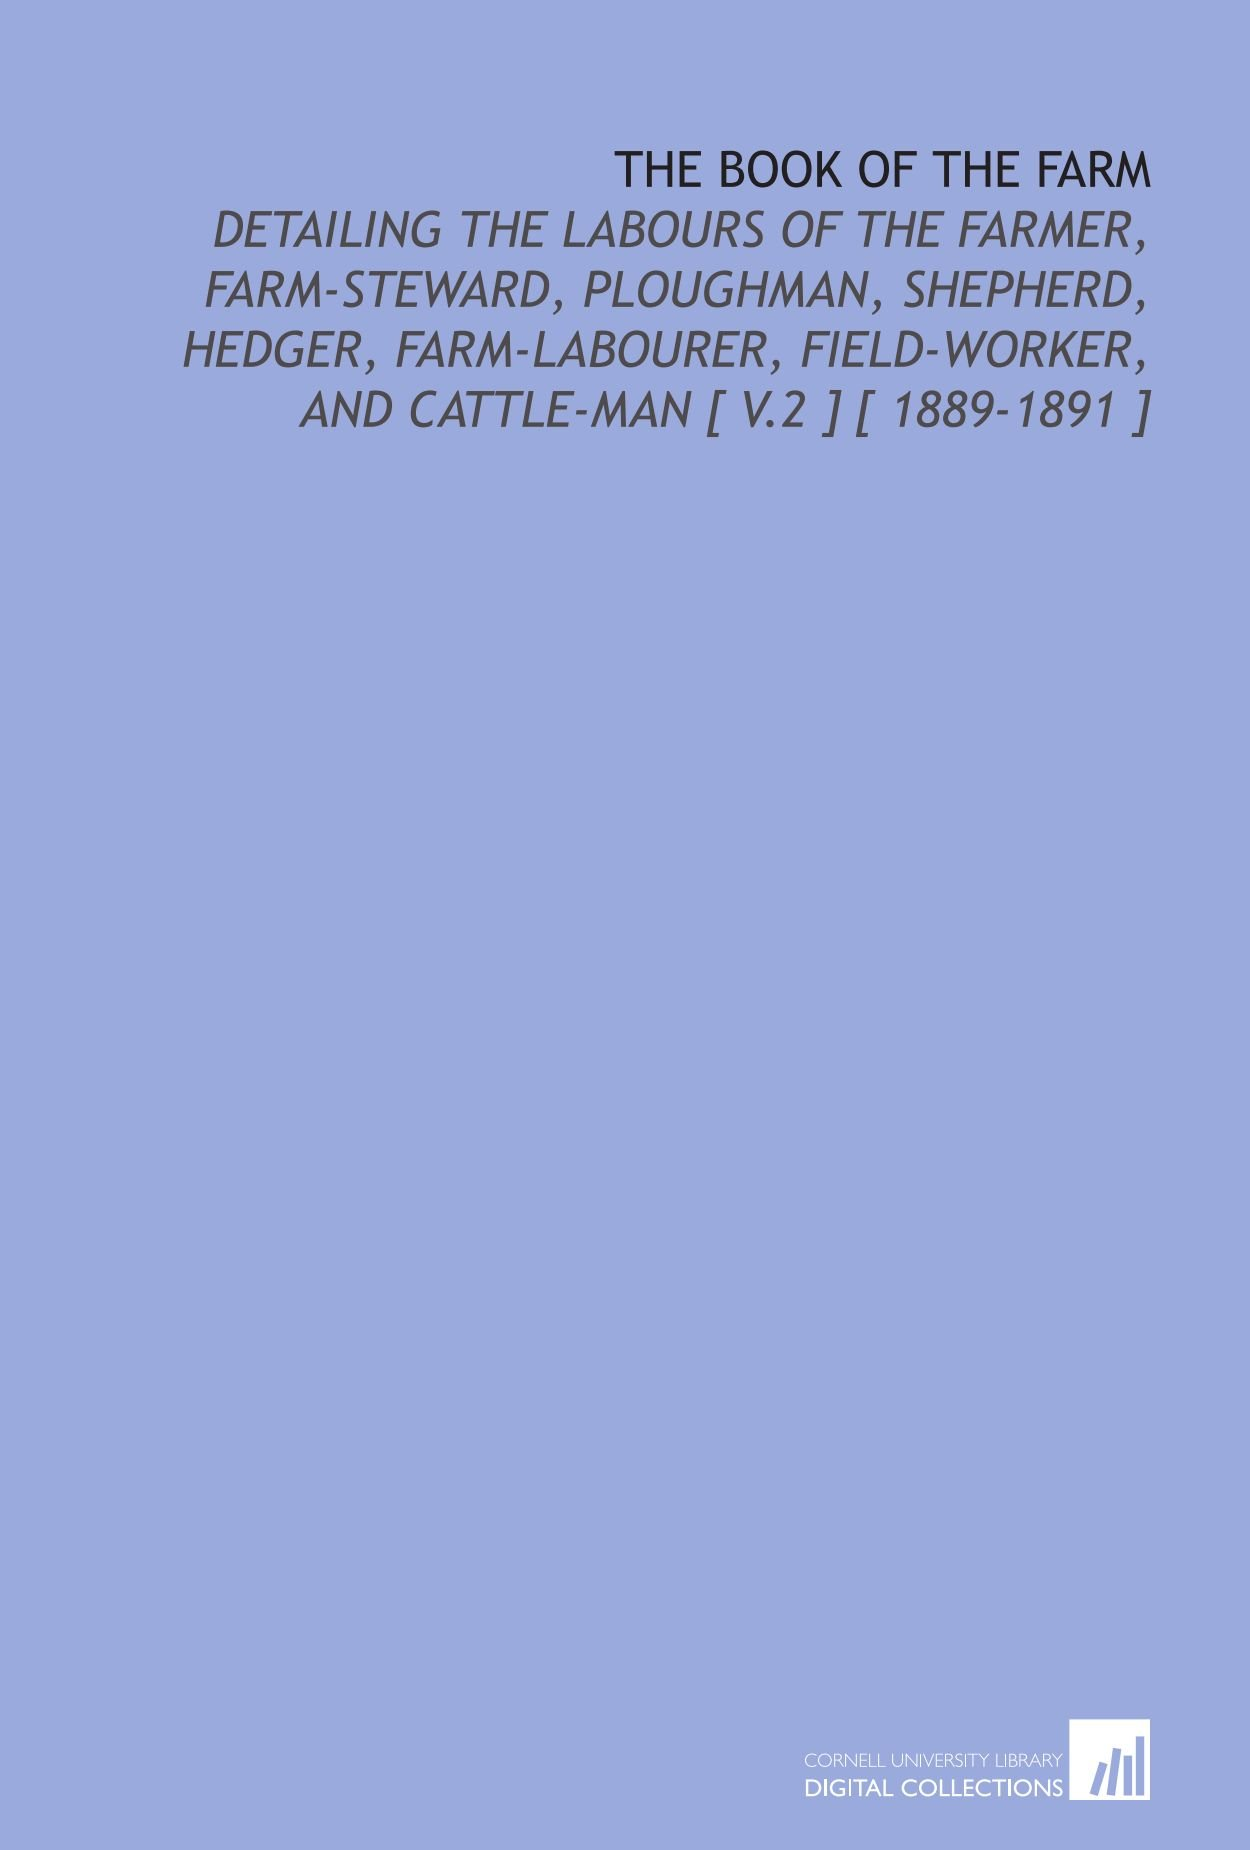 Download The Book of the Farm: Detailing the Labours of the Farmer, Farm-Steward, Ploughman, Shepherd, Hedger, Farm-Labourer, Field-Worker, and Cattle-Man [ V.2 ] [ 1889-1891 ] ebook